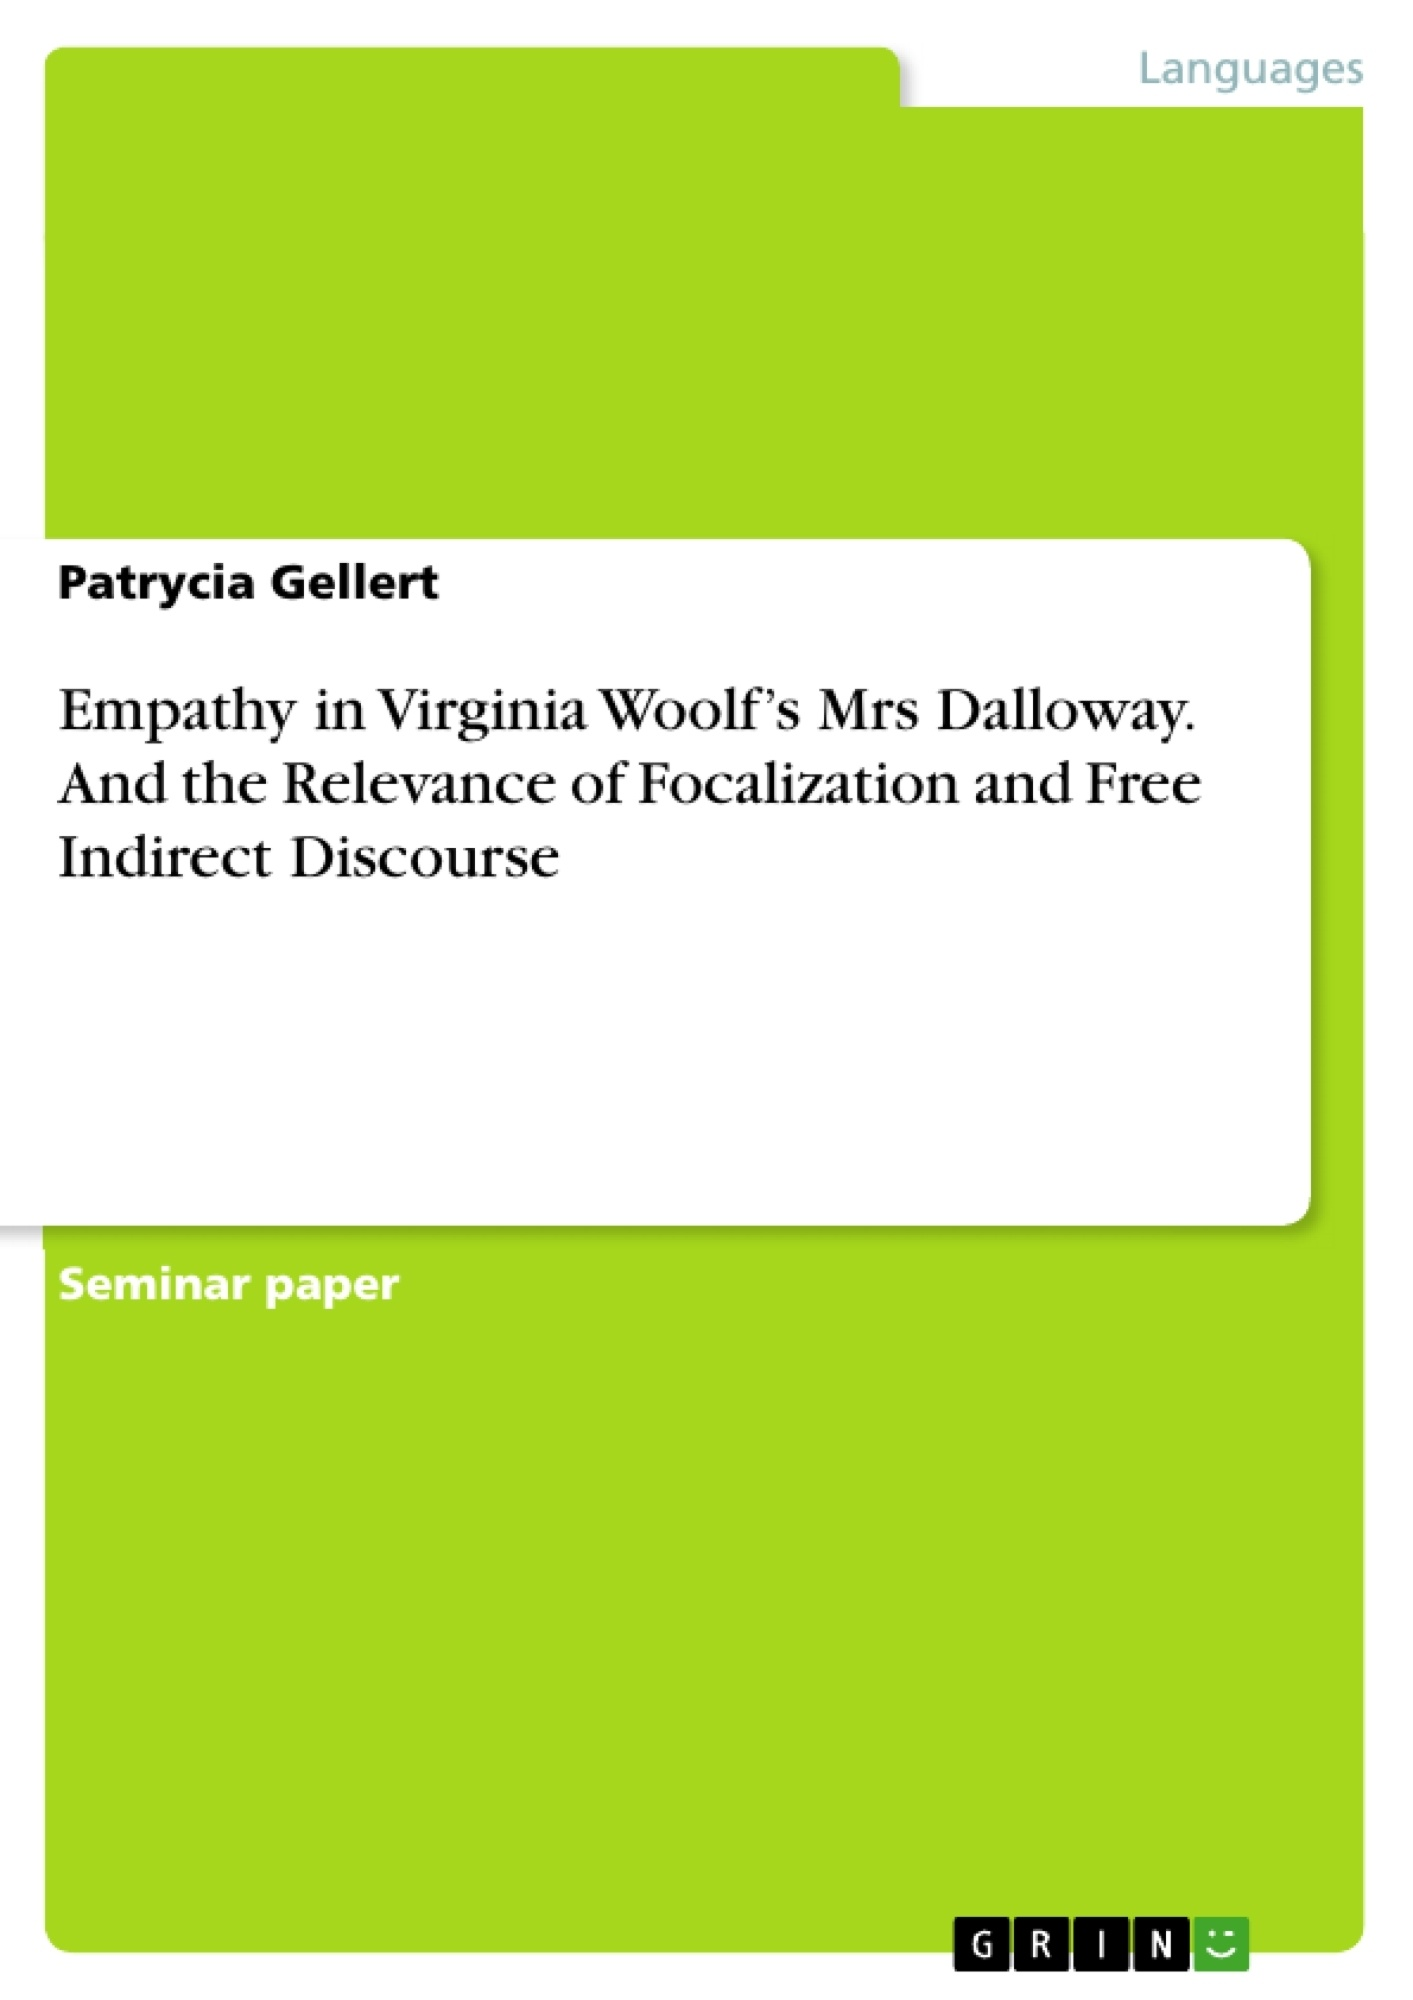 Title: Empathy in Virginia Woolf's Mrs Dalloway. And the Relevance of Focalization and Free Indirect Discourse